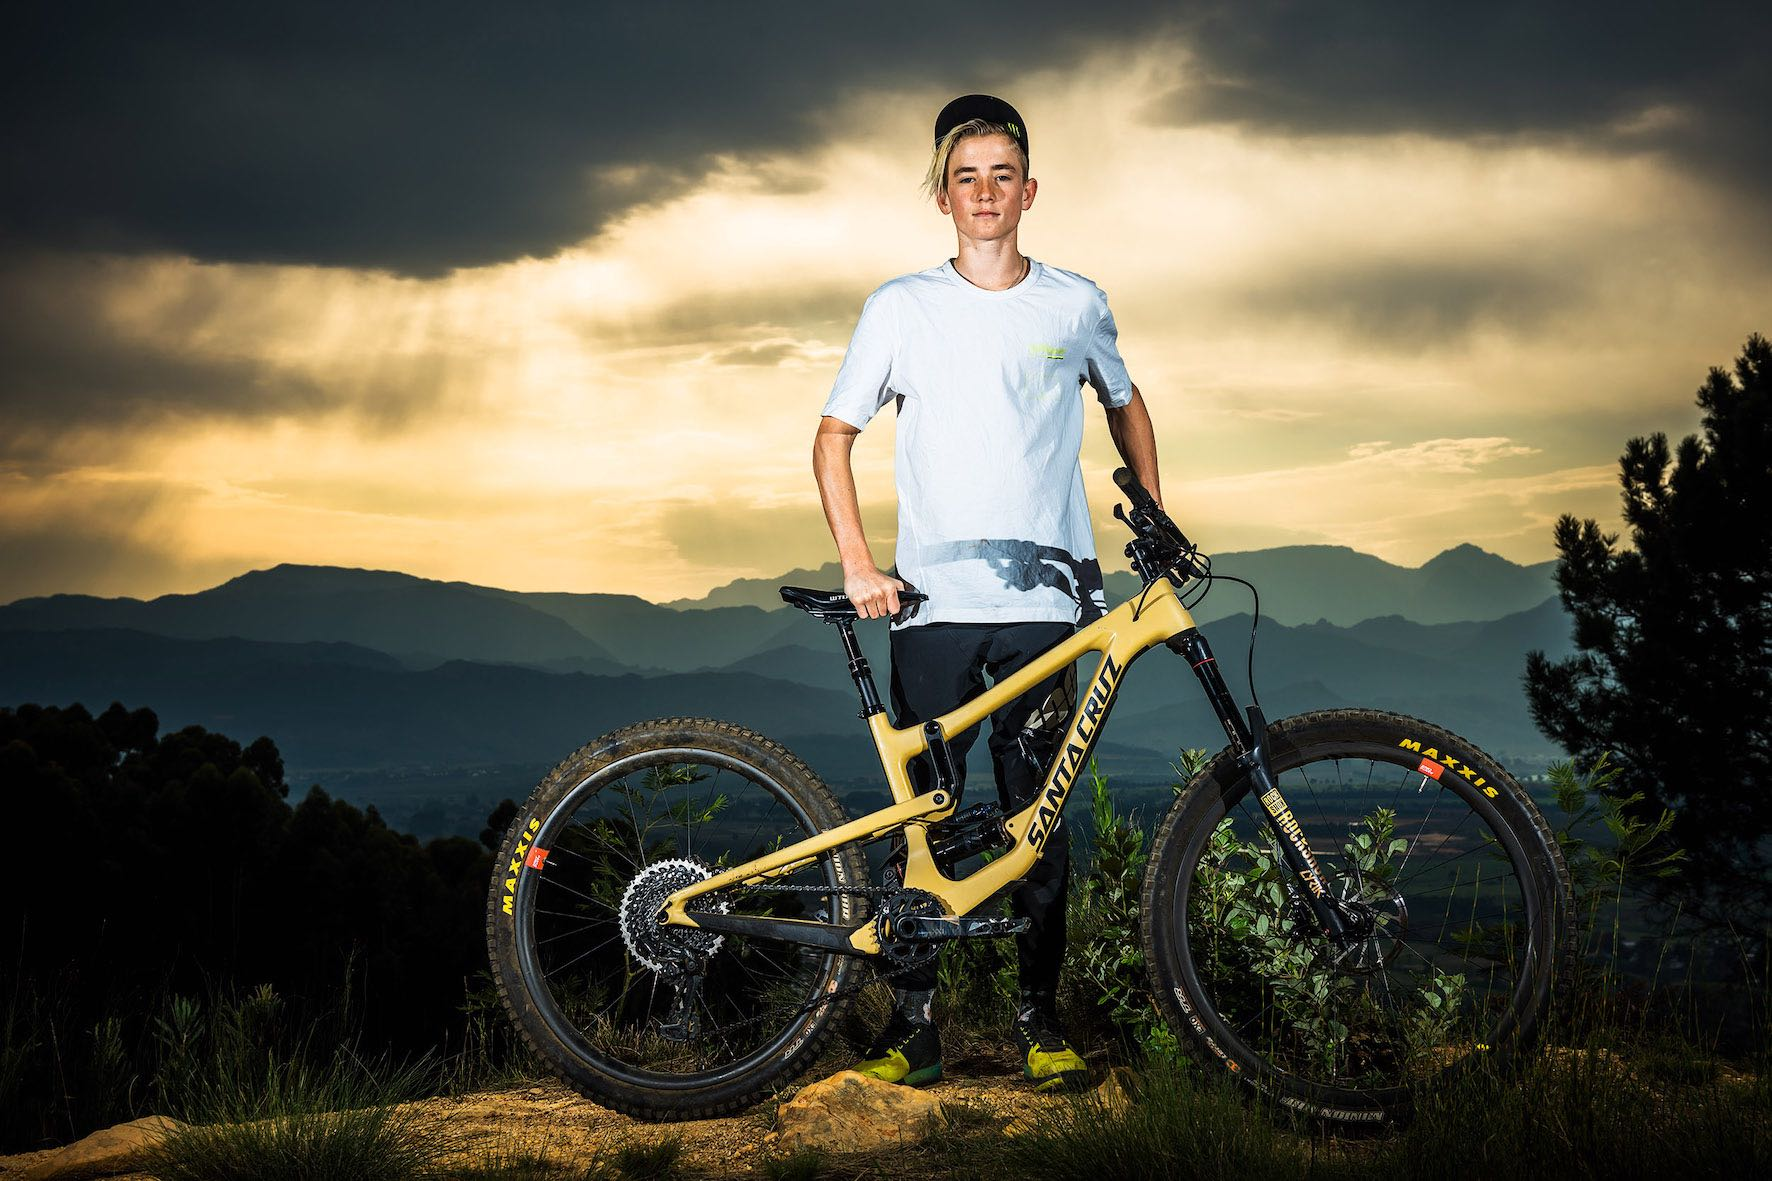 Downhill MTB rider, Ike Klaassen joins the Monster Army Family